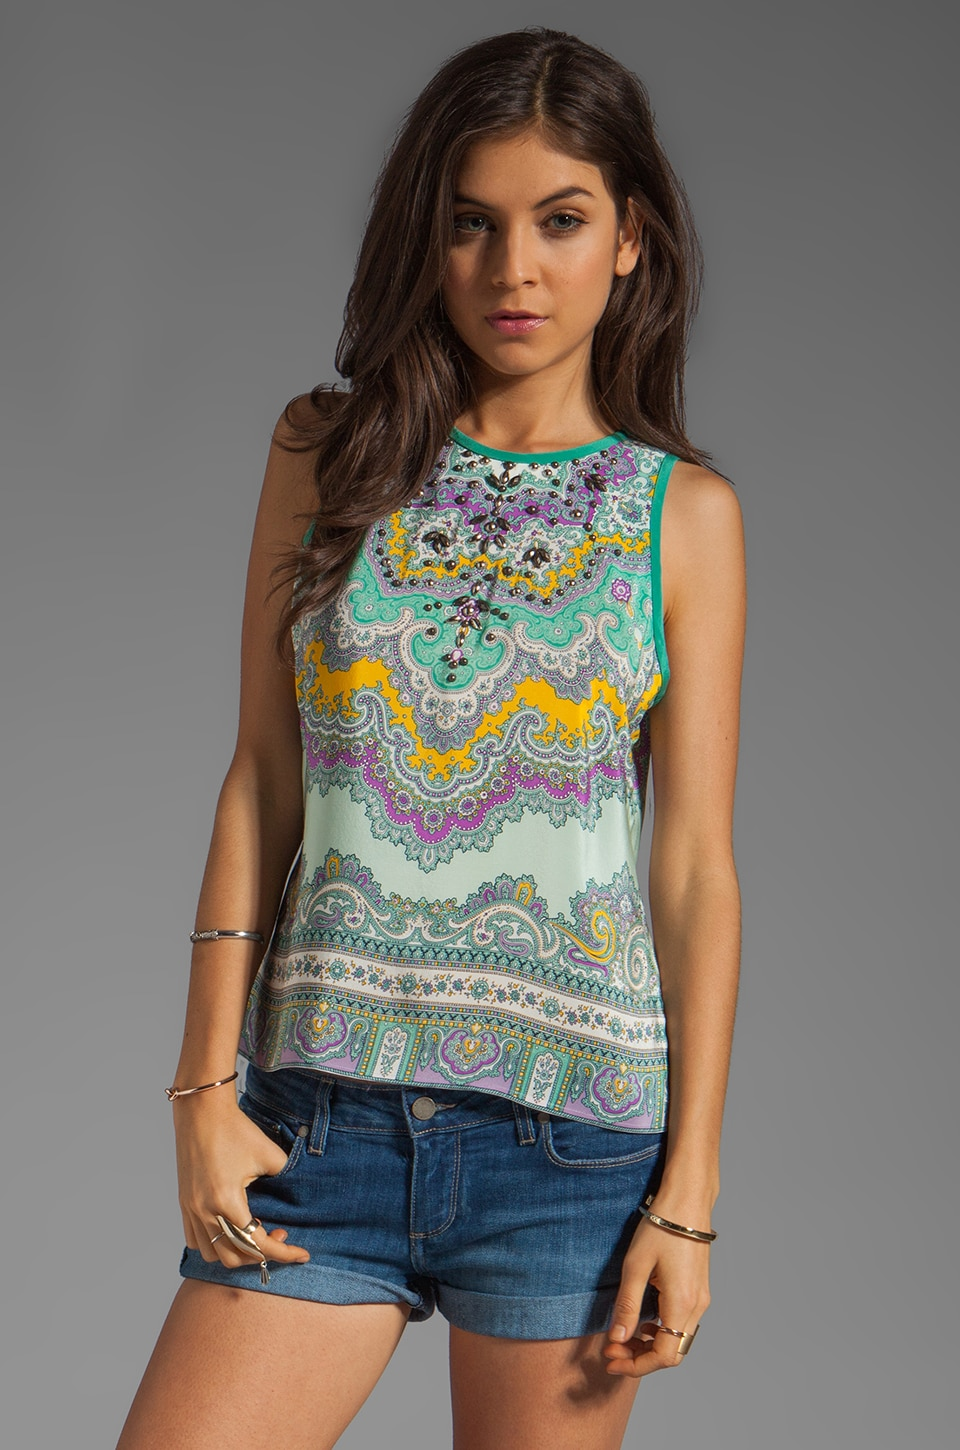 Nanette Lepore Gemstone Top in Mint Multi